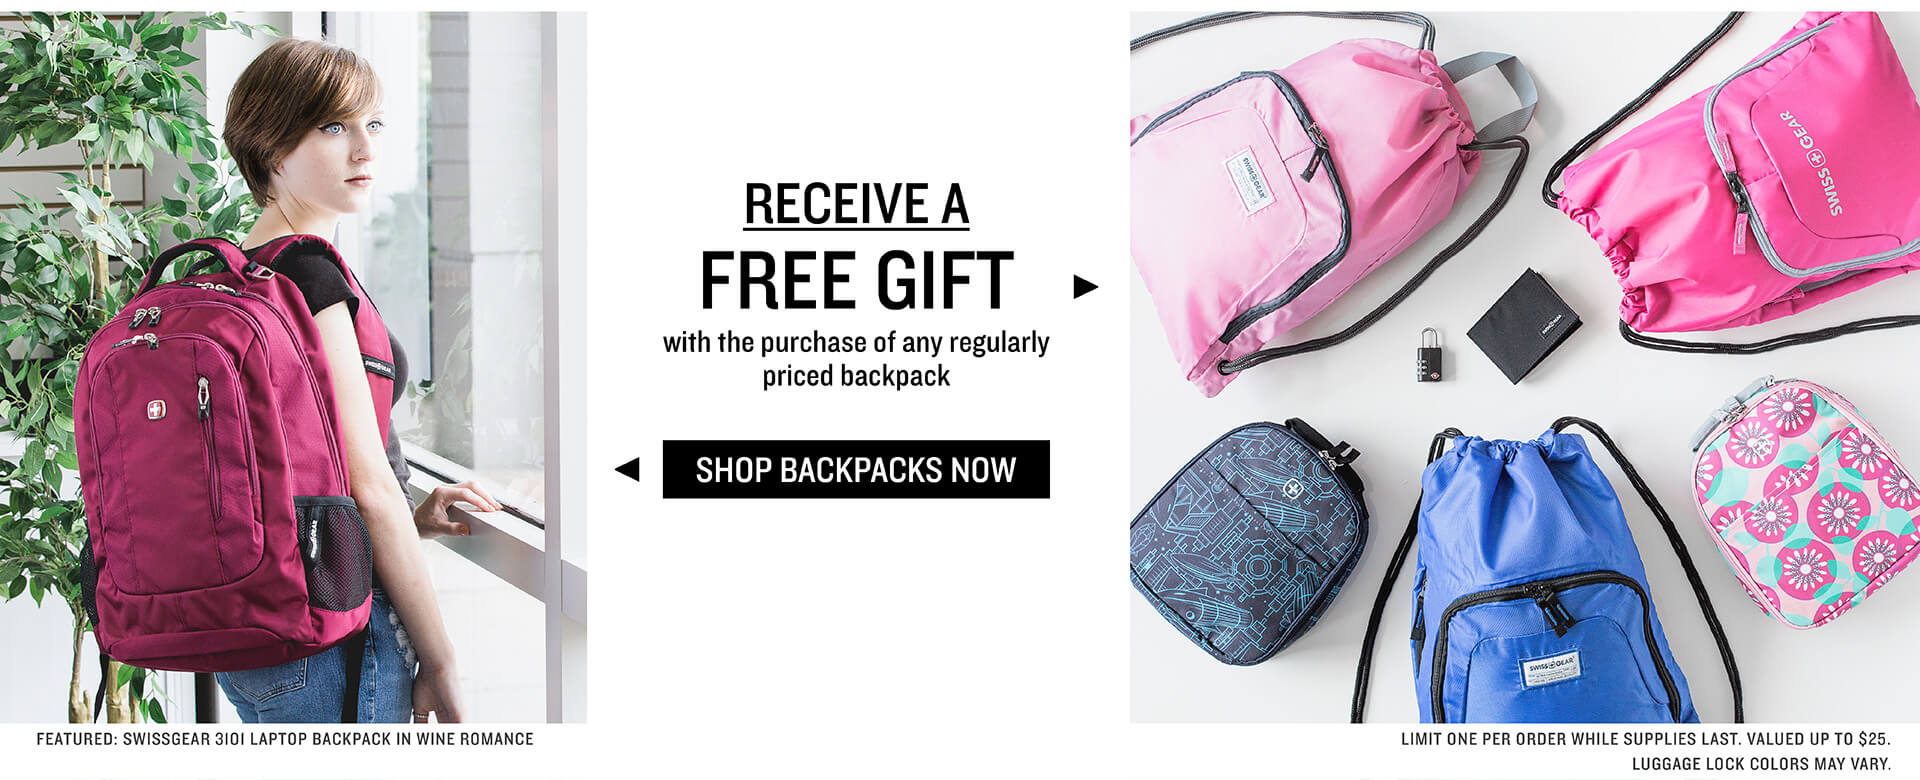 FREE Gift with purchase of regularly priced backpacks